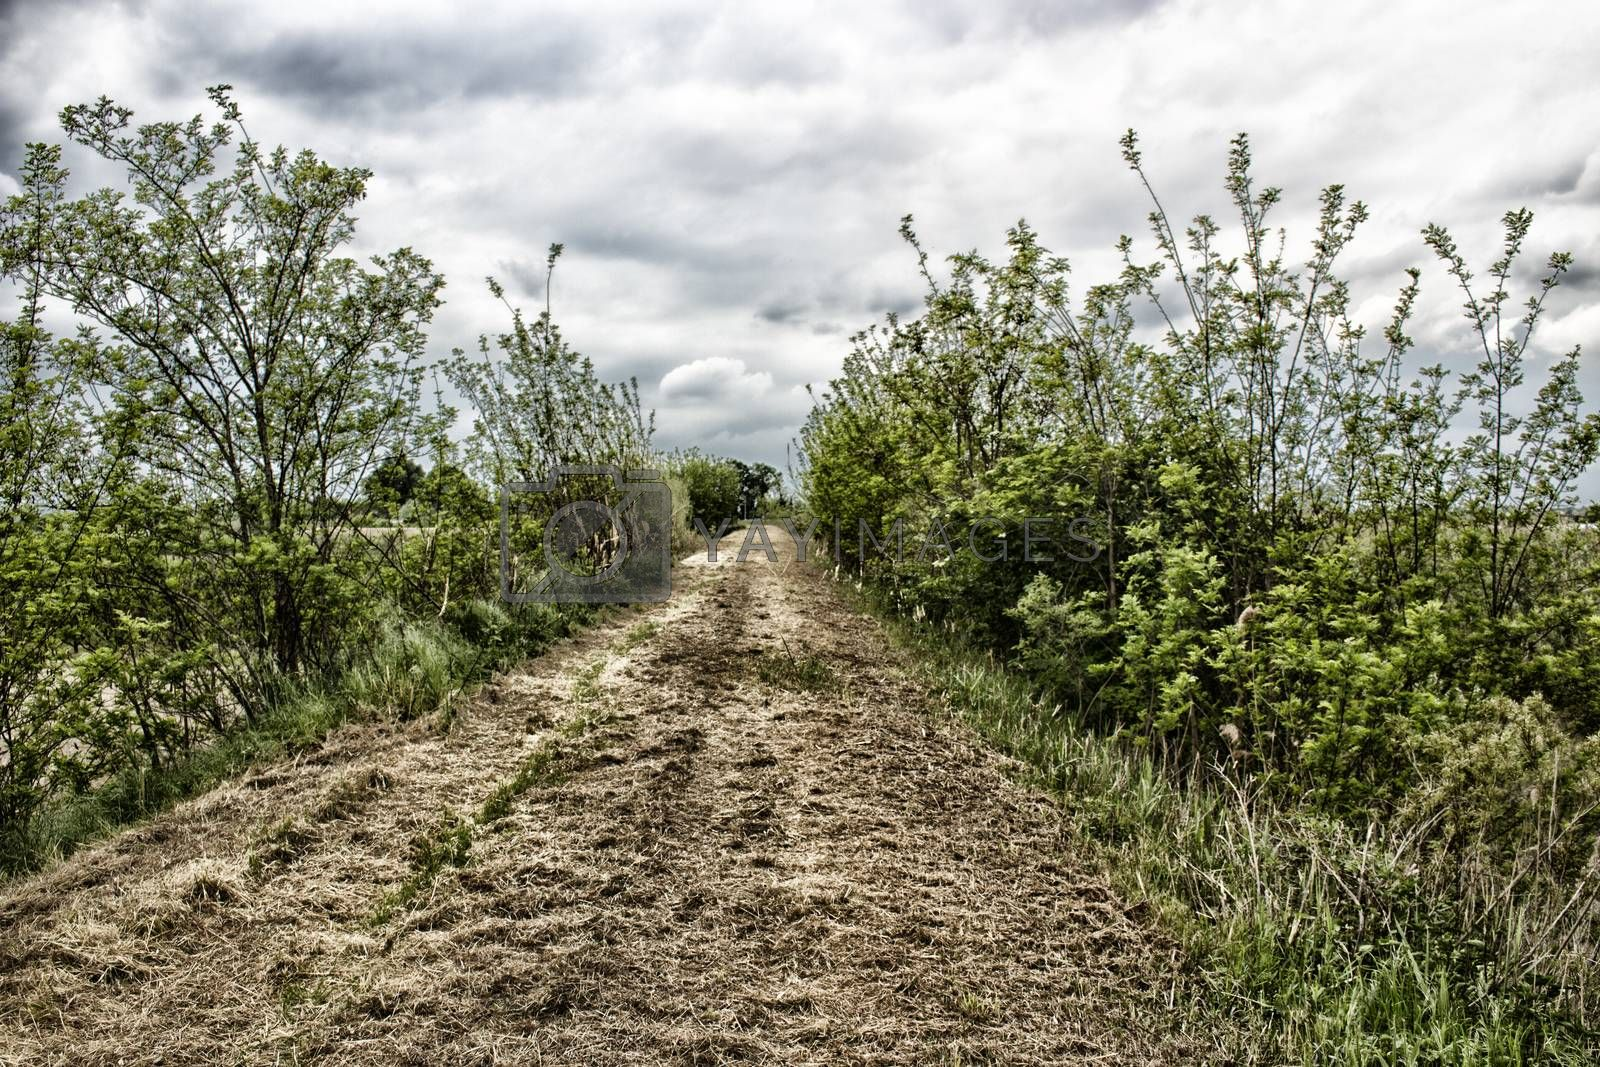 Walking on dry grass on the embankment of the senio river in Italian countryside